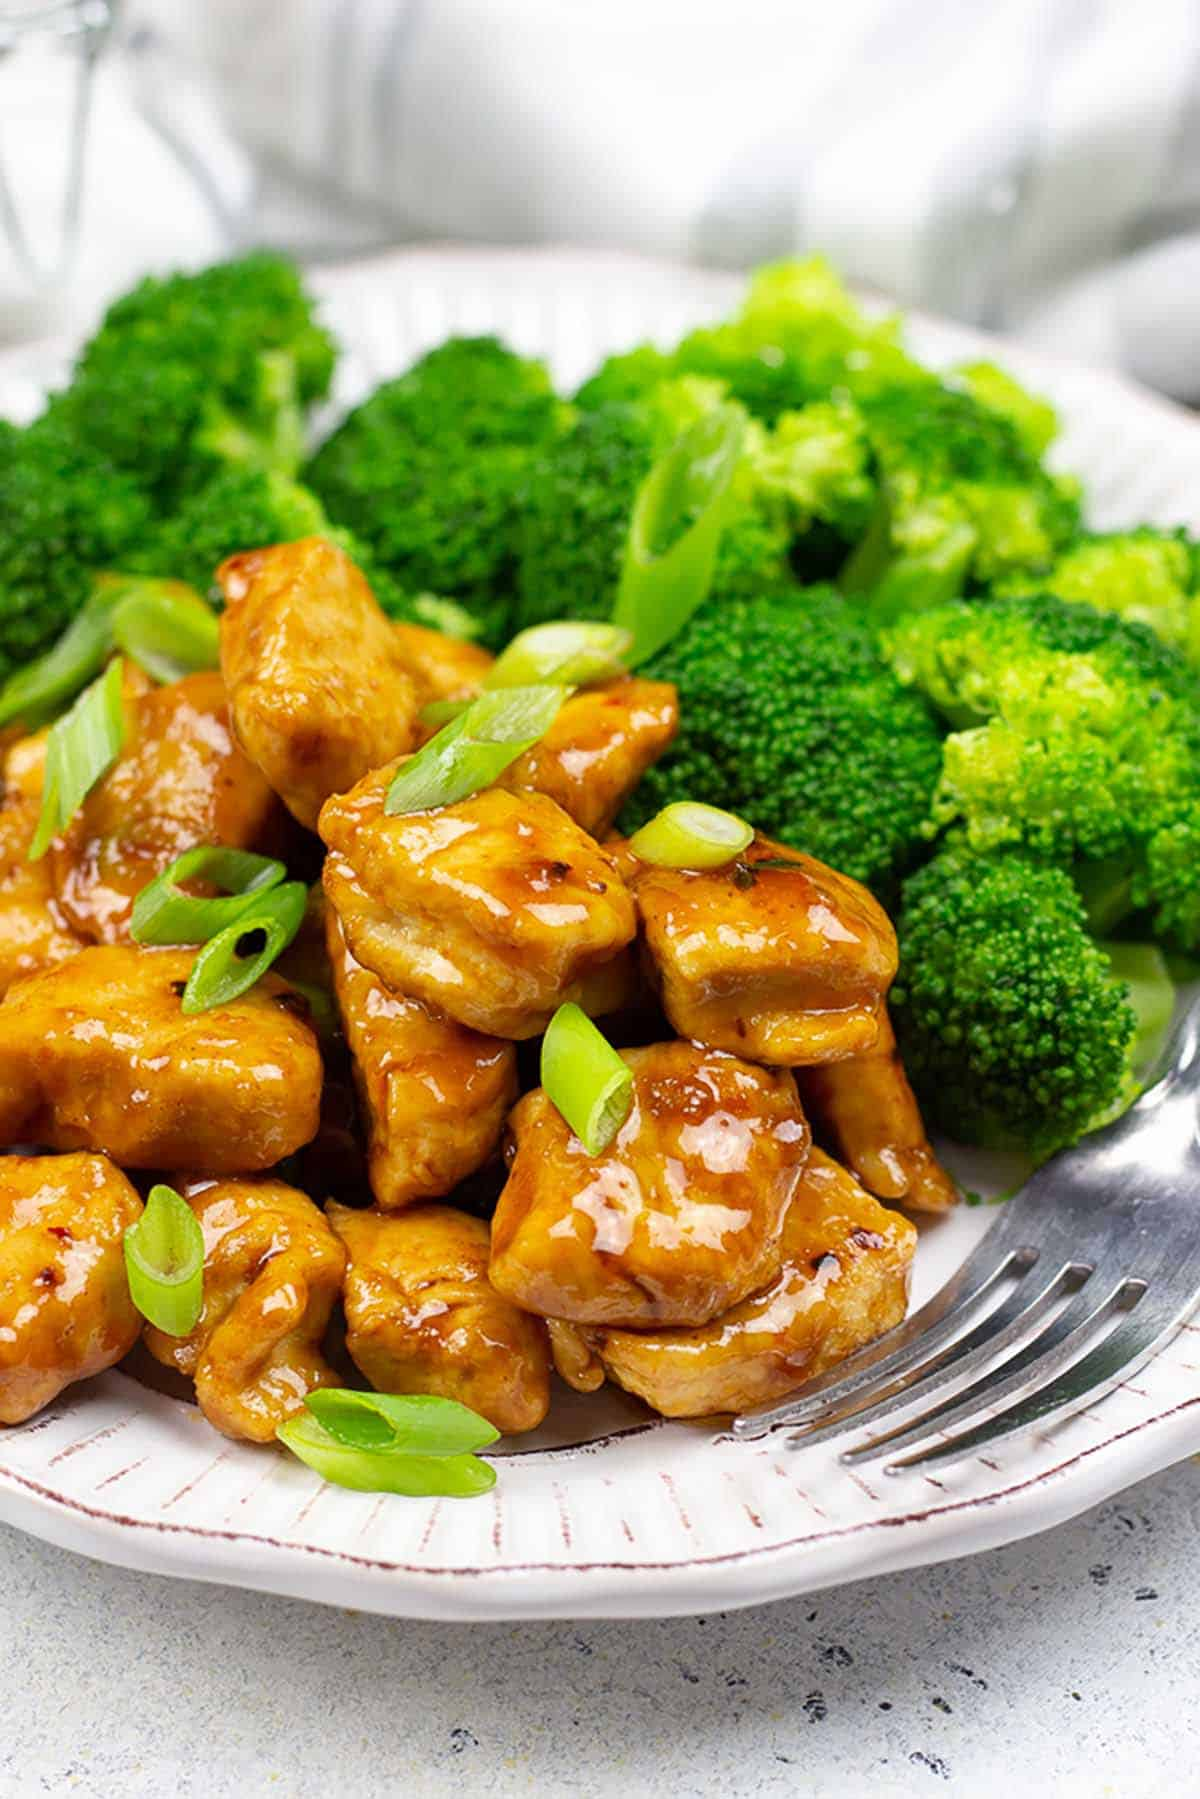 Low-Carb General Tso's Chicken on a plate with steamed broccoli